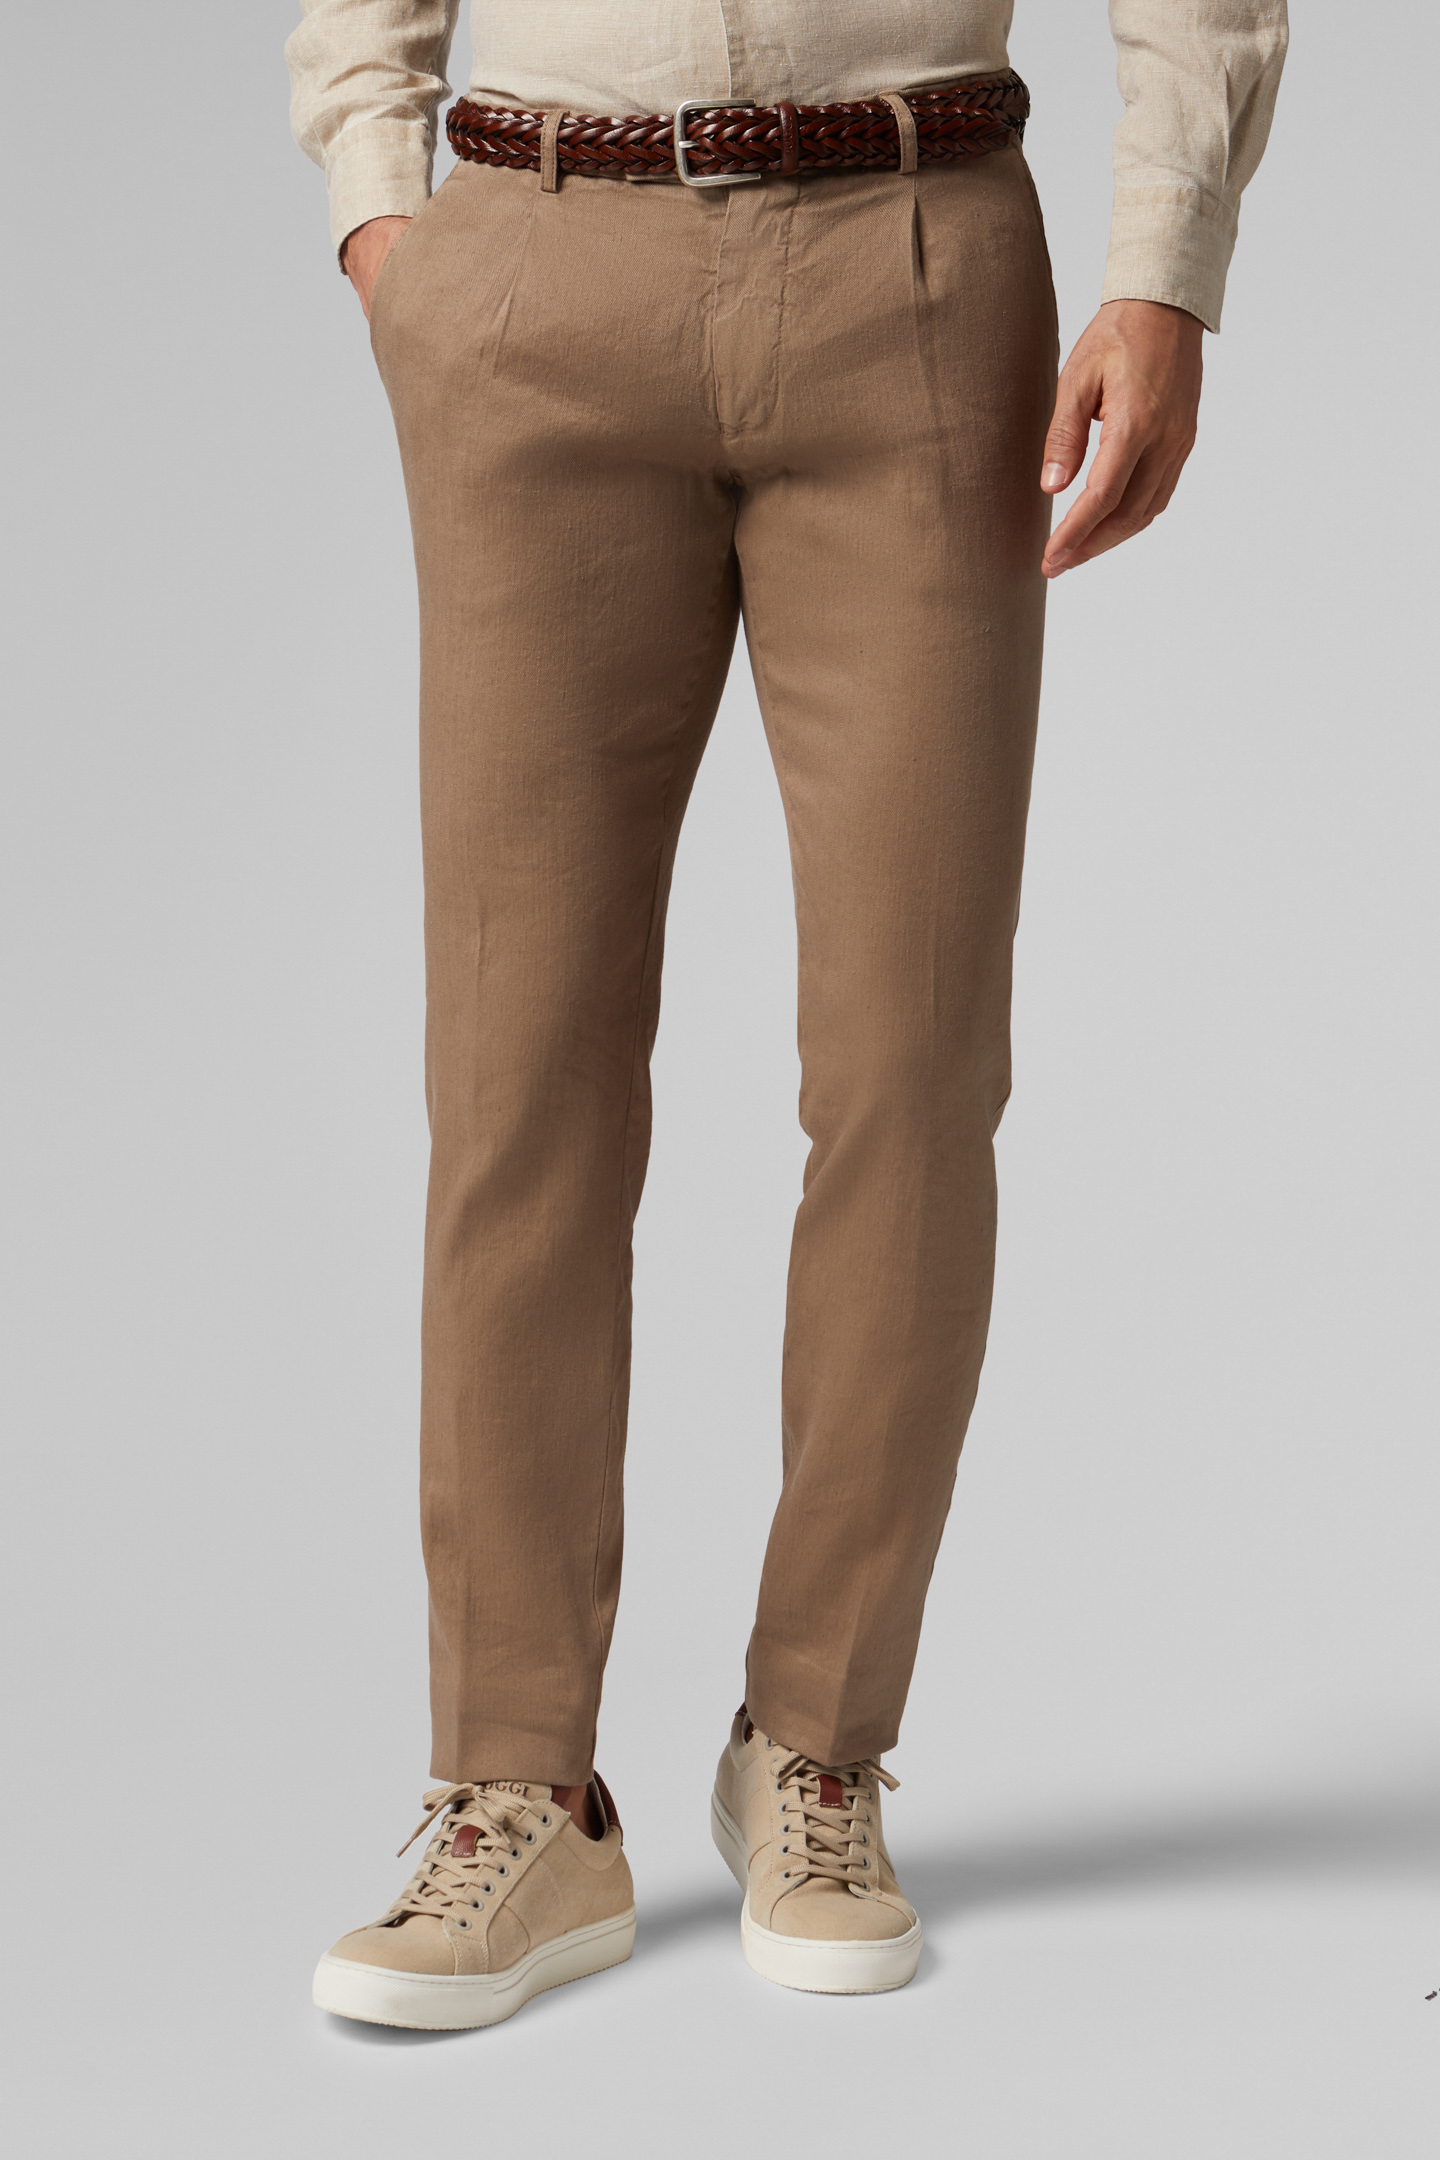 PANTALONE IN COTONE E LINO STRETCH SLIM FIT , , hi-res